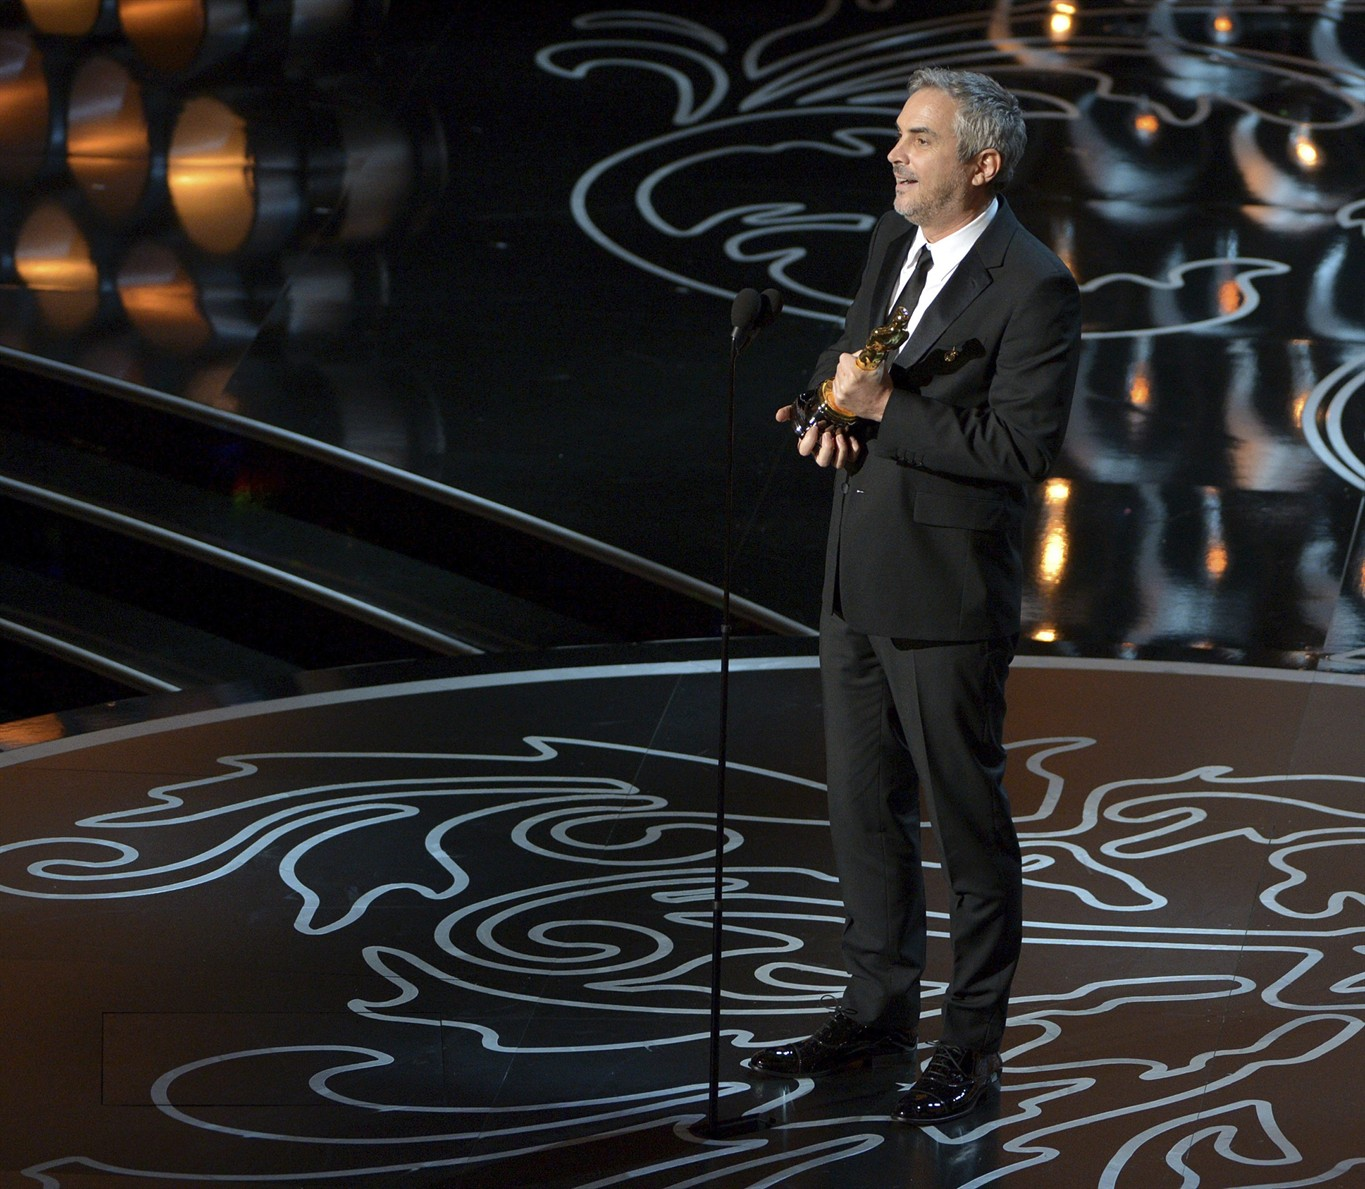 Alfonso Cuarón film crew 'attacked and robbed' in Mexico City